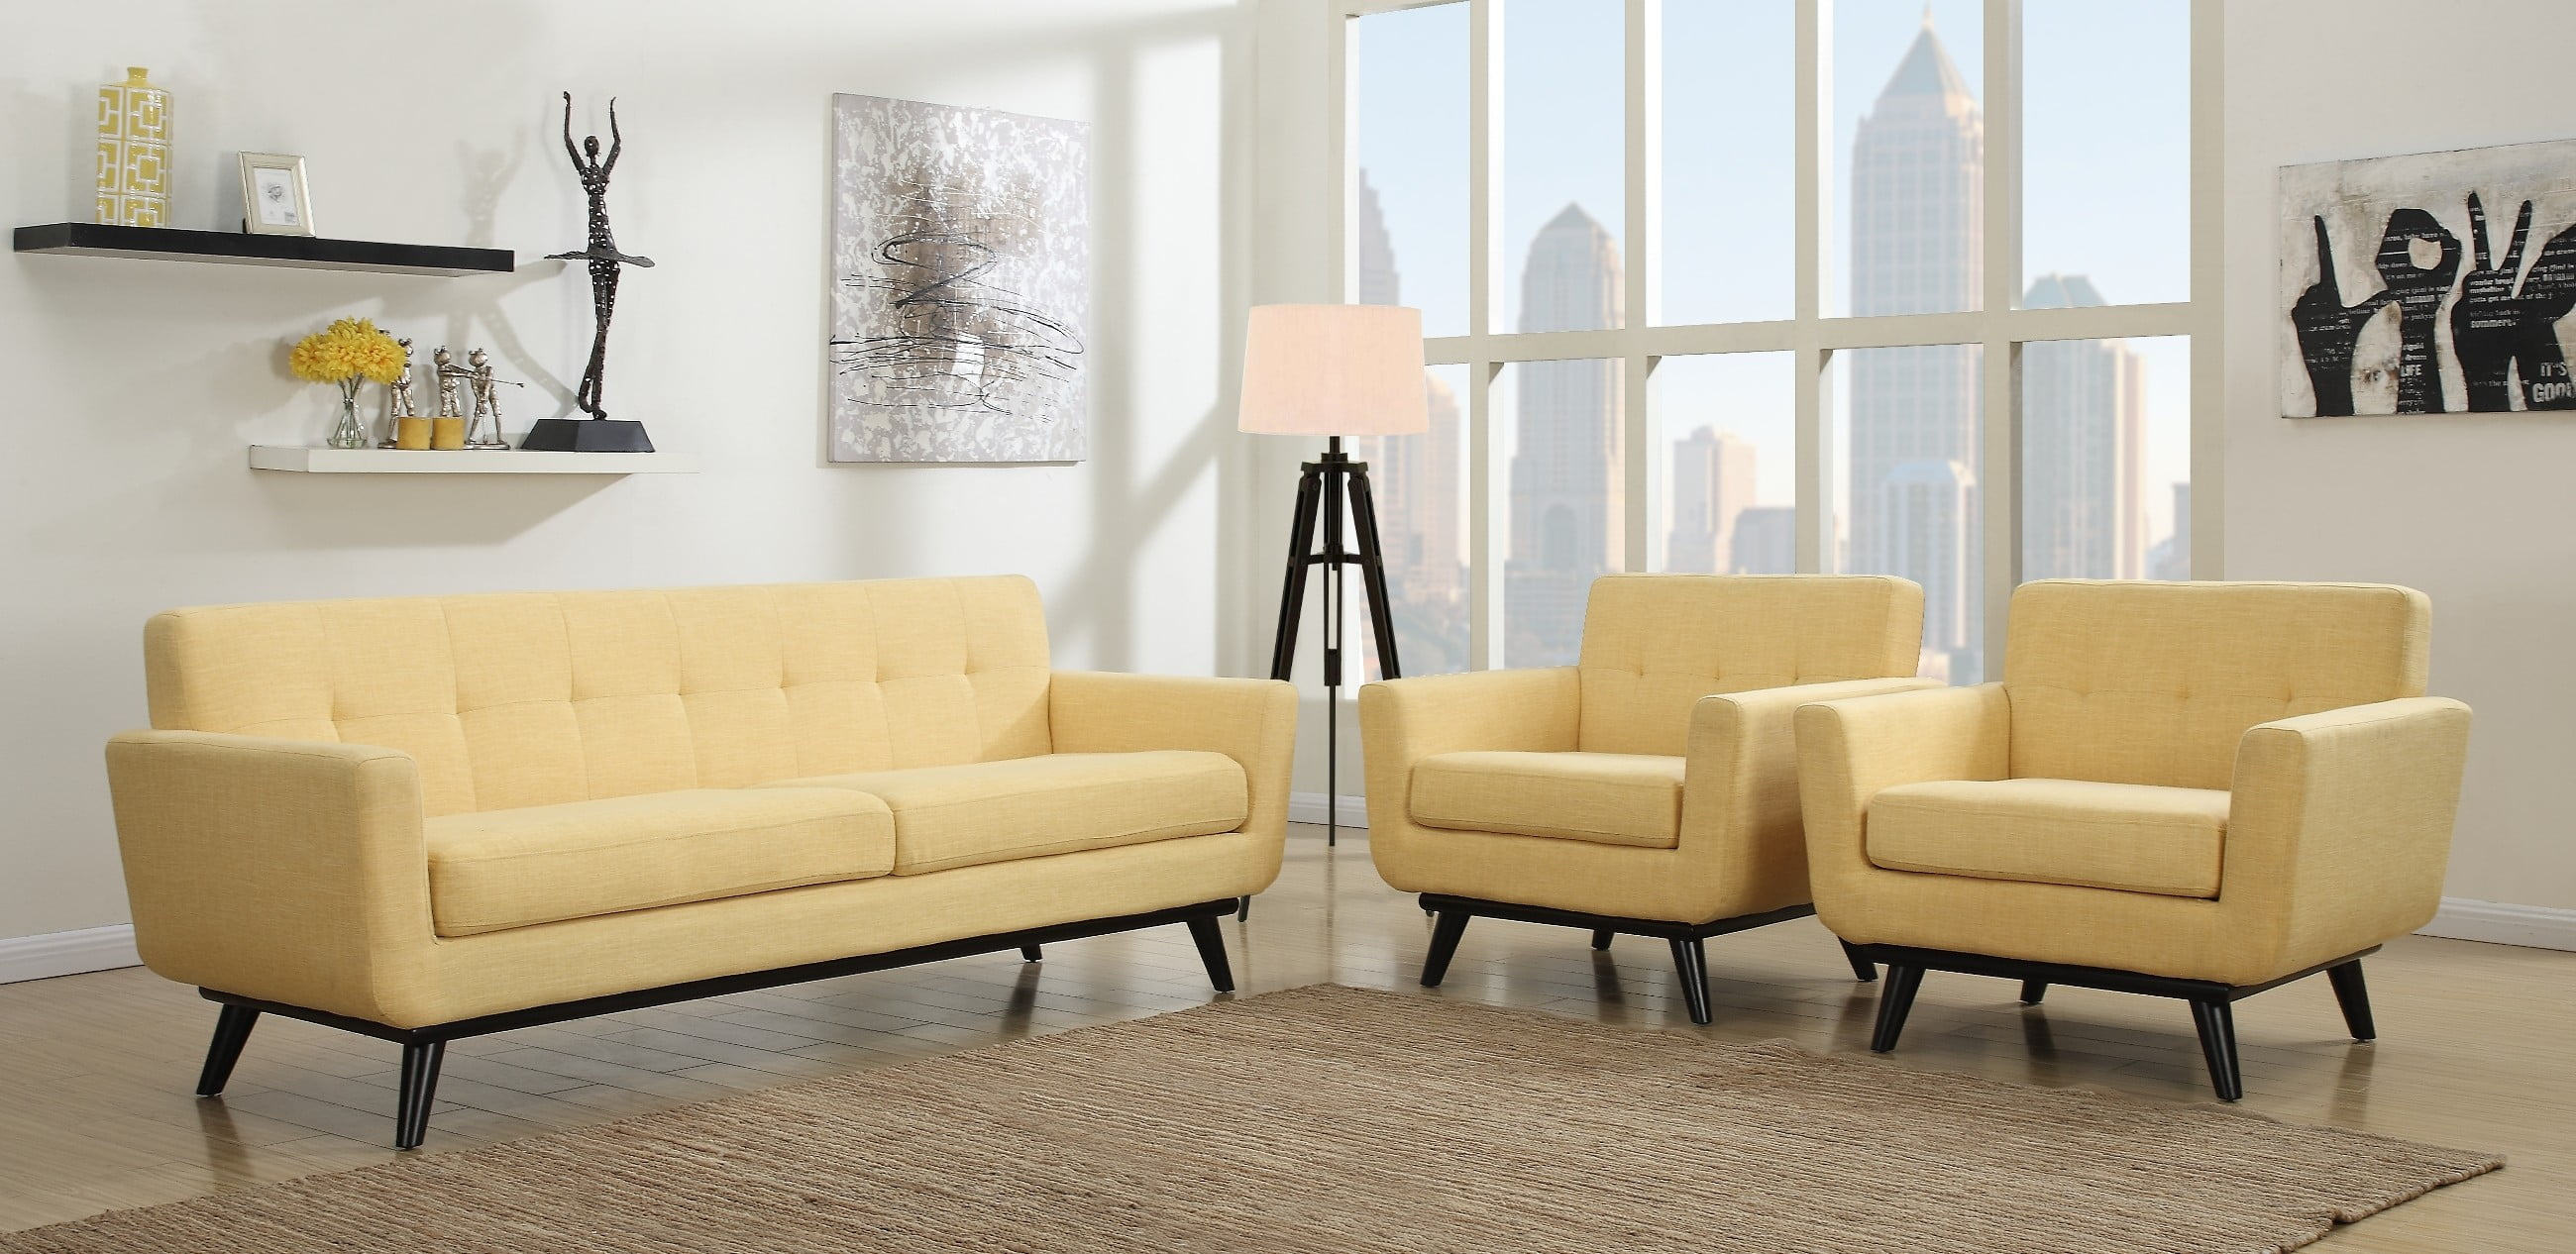 James Mustard Yellow Linen Sofa